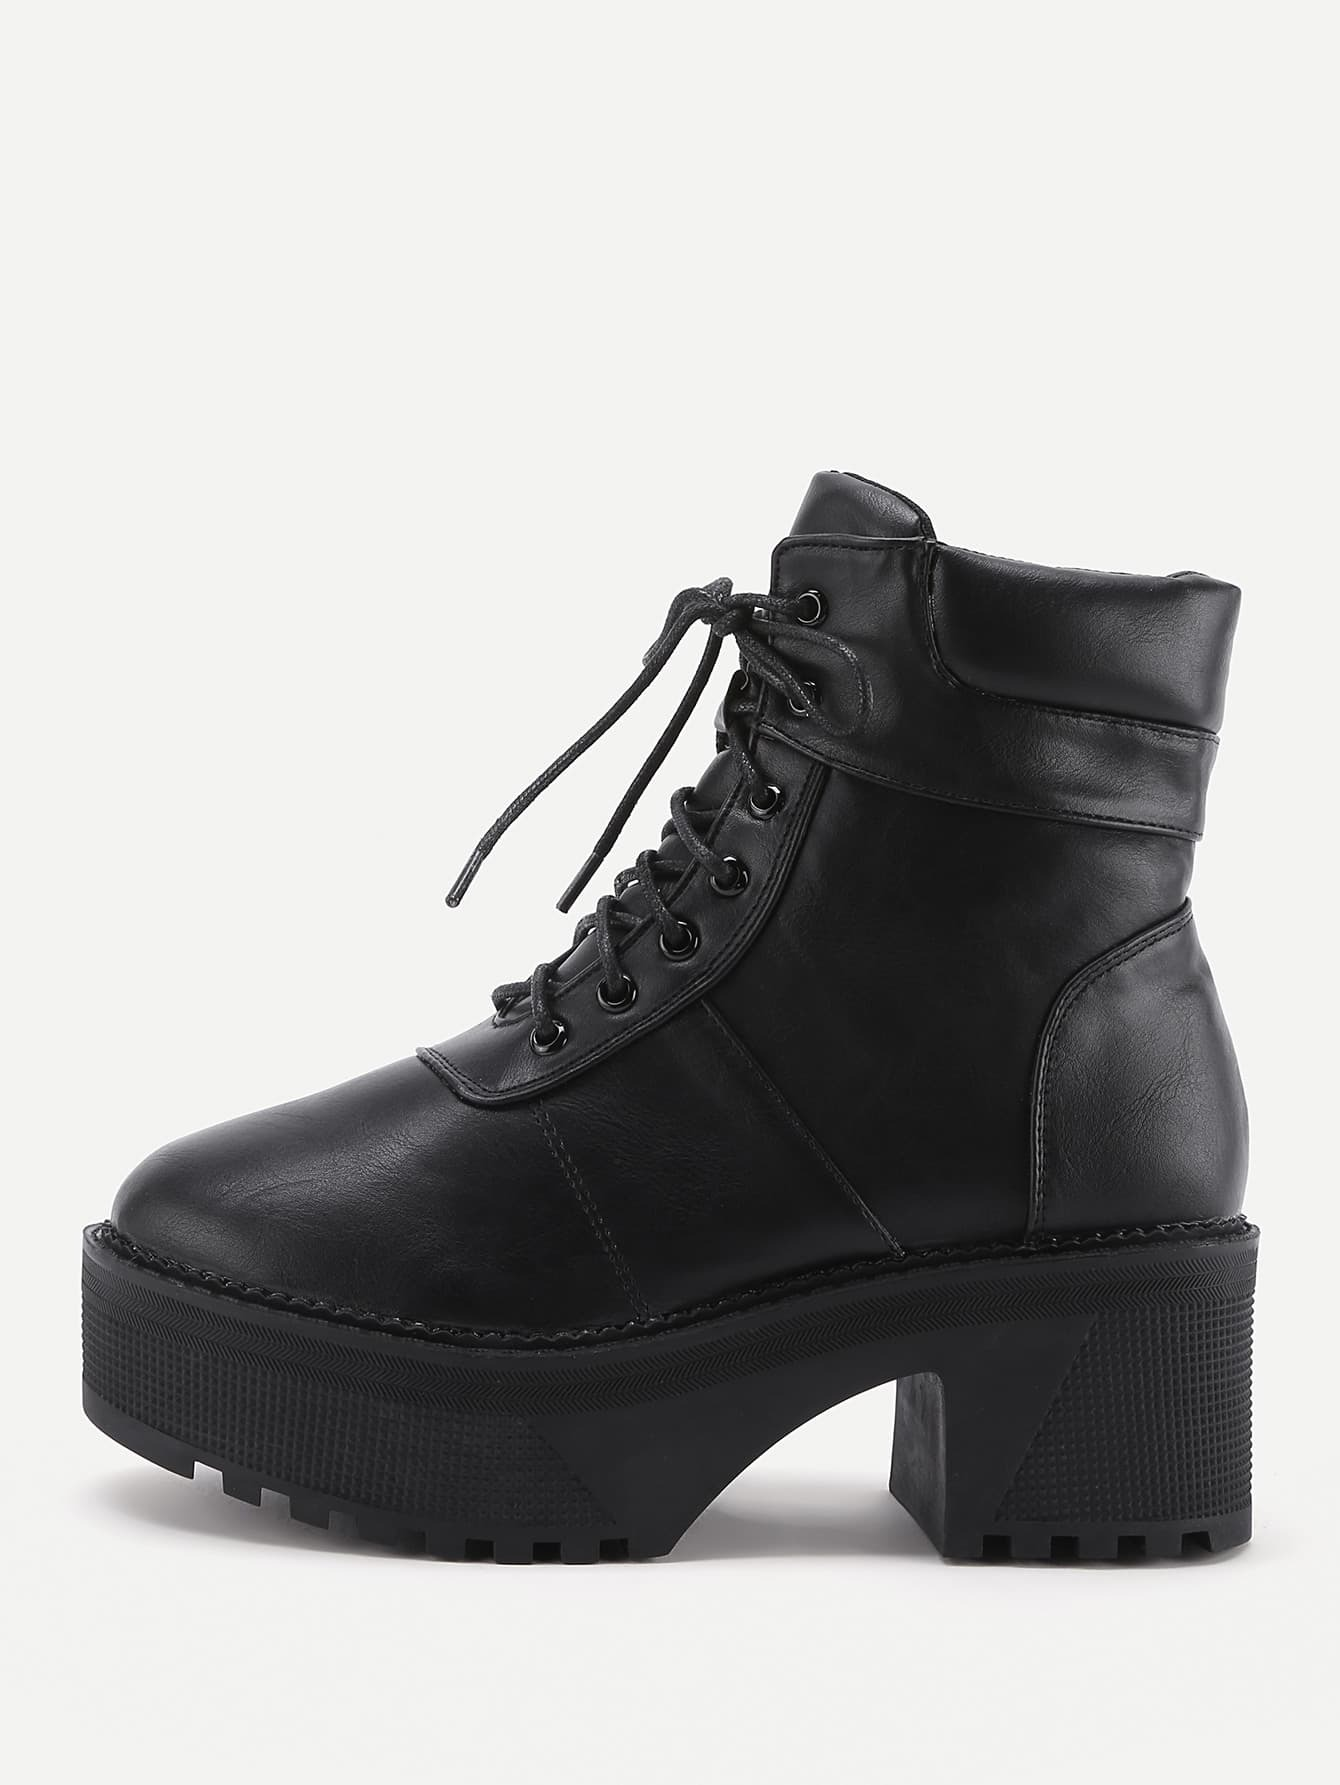 Platform Lace Up Faux Leather Boots shoes170914804